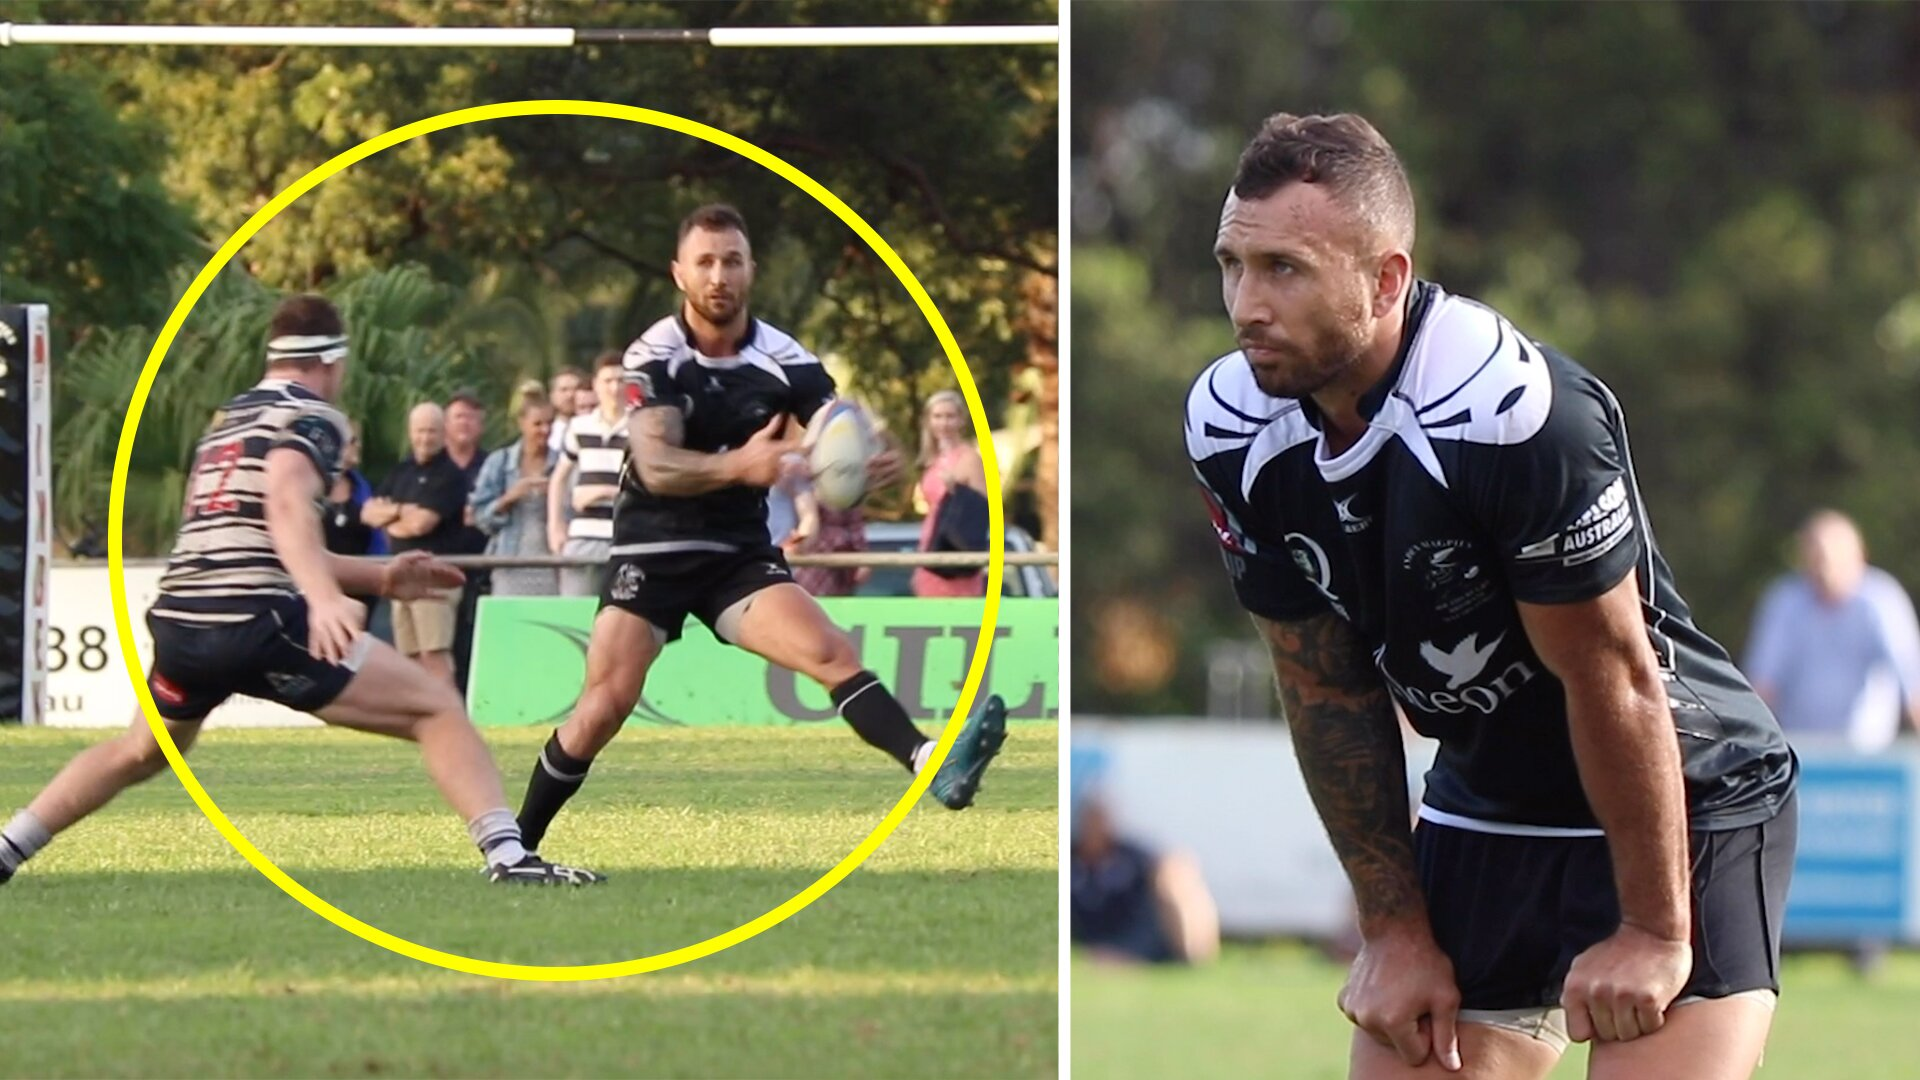 New video shows Quade Cooper playing semi-pro rugby while he was exiled from Super Rugby